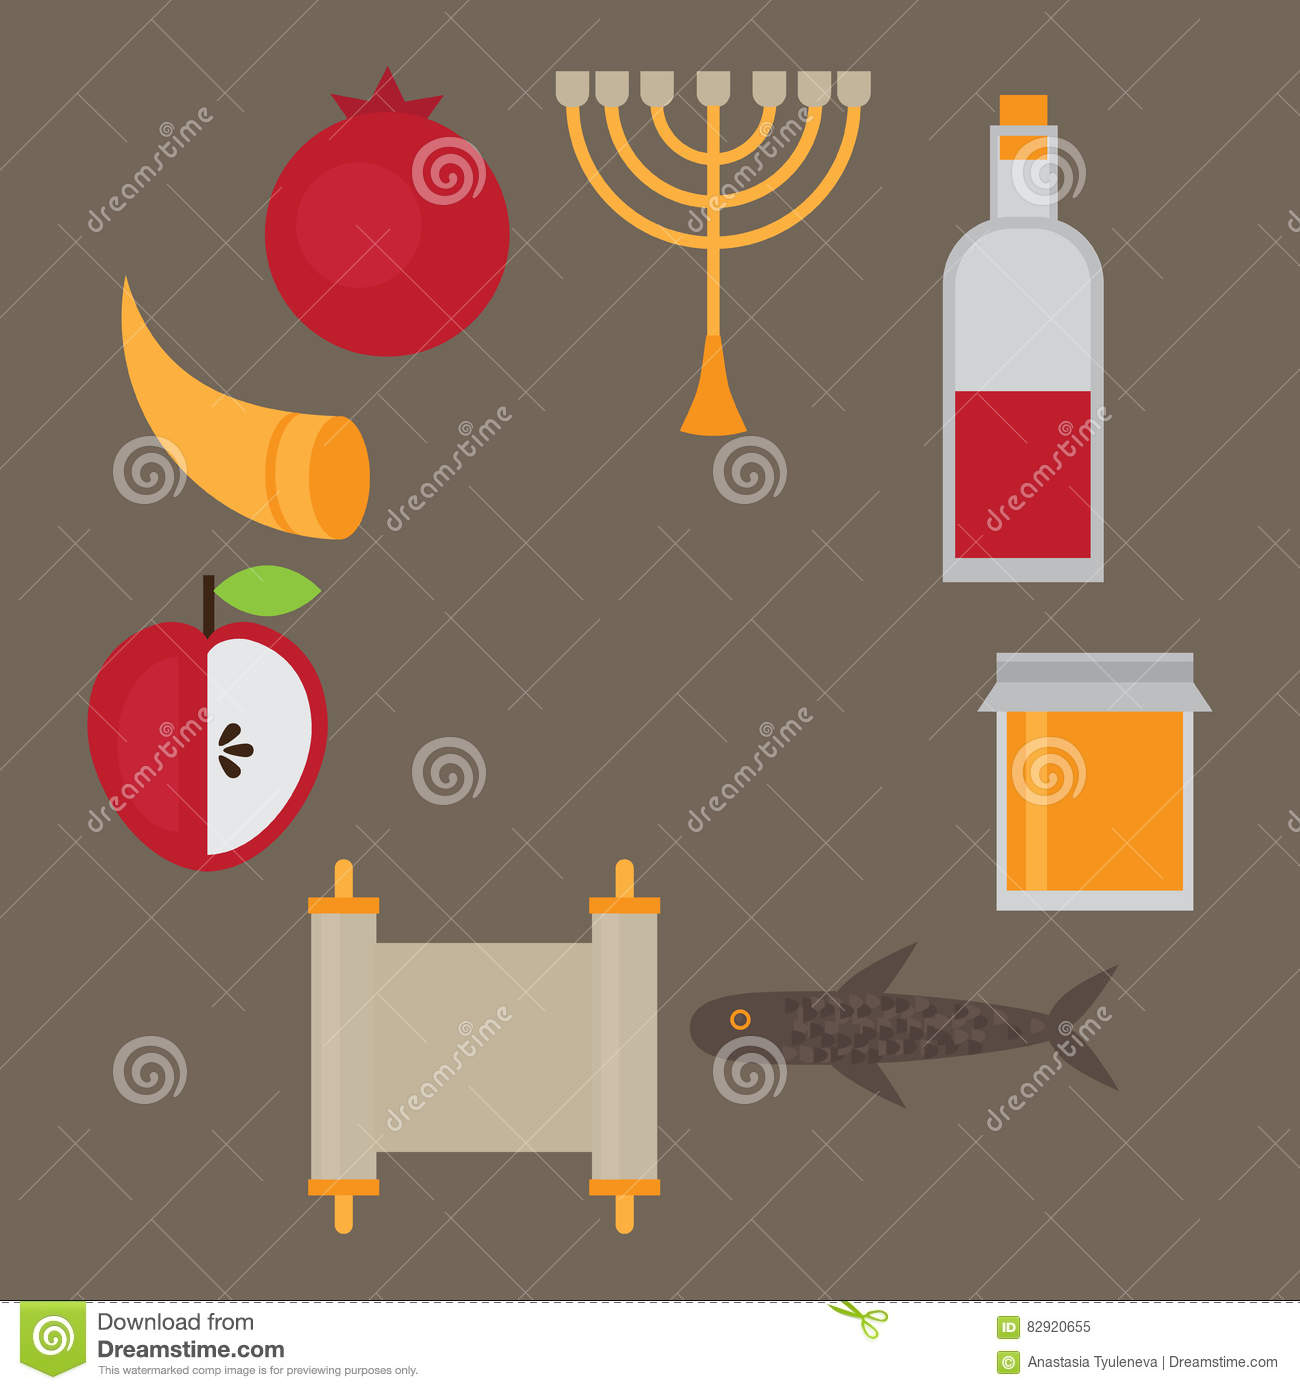 Rosh hashanah jewish new year greeting card hebrew symbols judaism download rosh hashanah jewish new year greeting card hebrew symbols judaism elements stock m4hsunfo